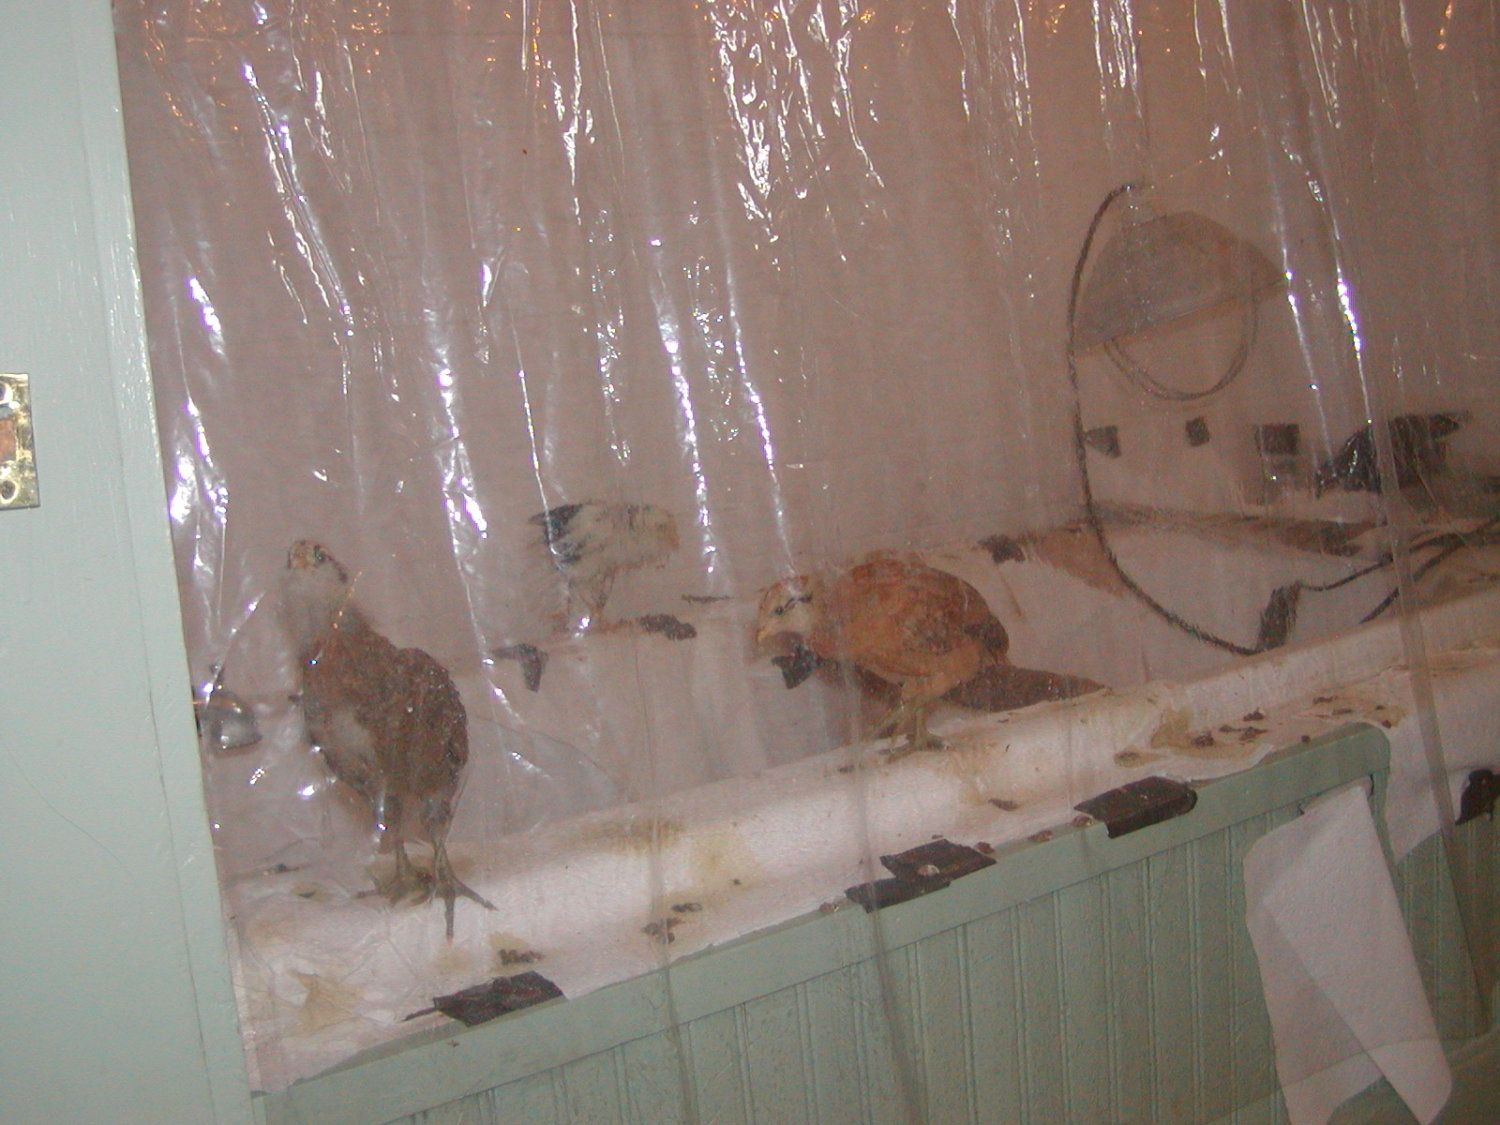 3 1/2 week old chickens ON, not IN, the tub.